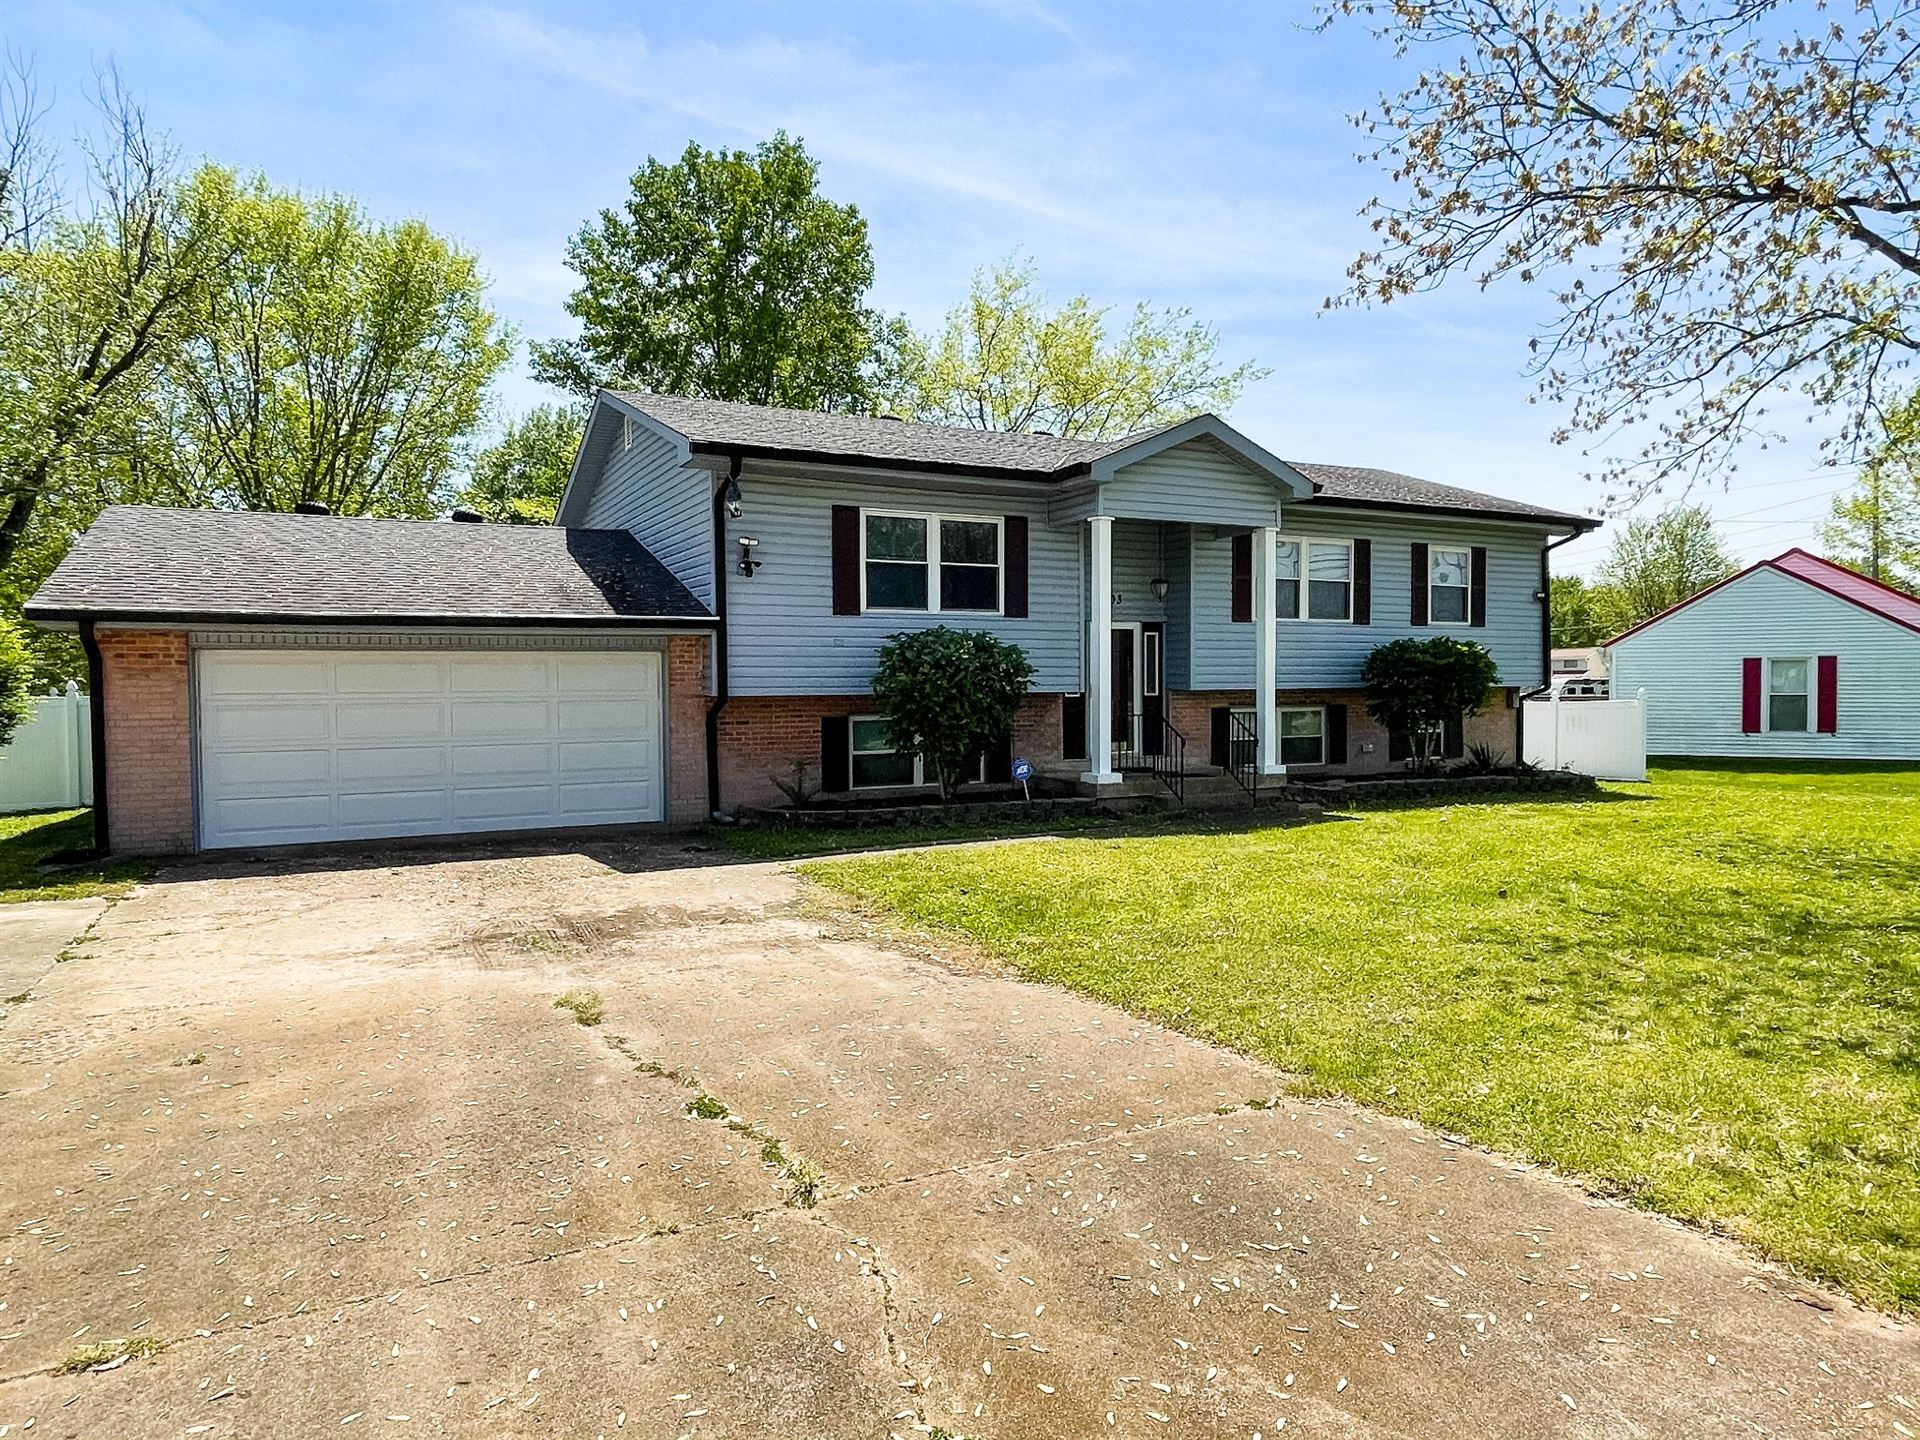 303 Belinda Pkwy, Mount Juliet, TN 37122 - MLS#: 2251446